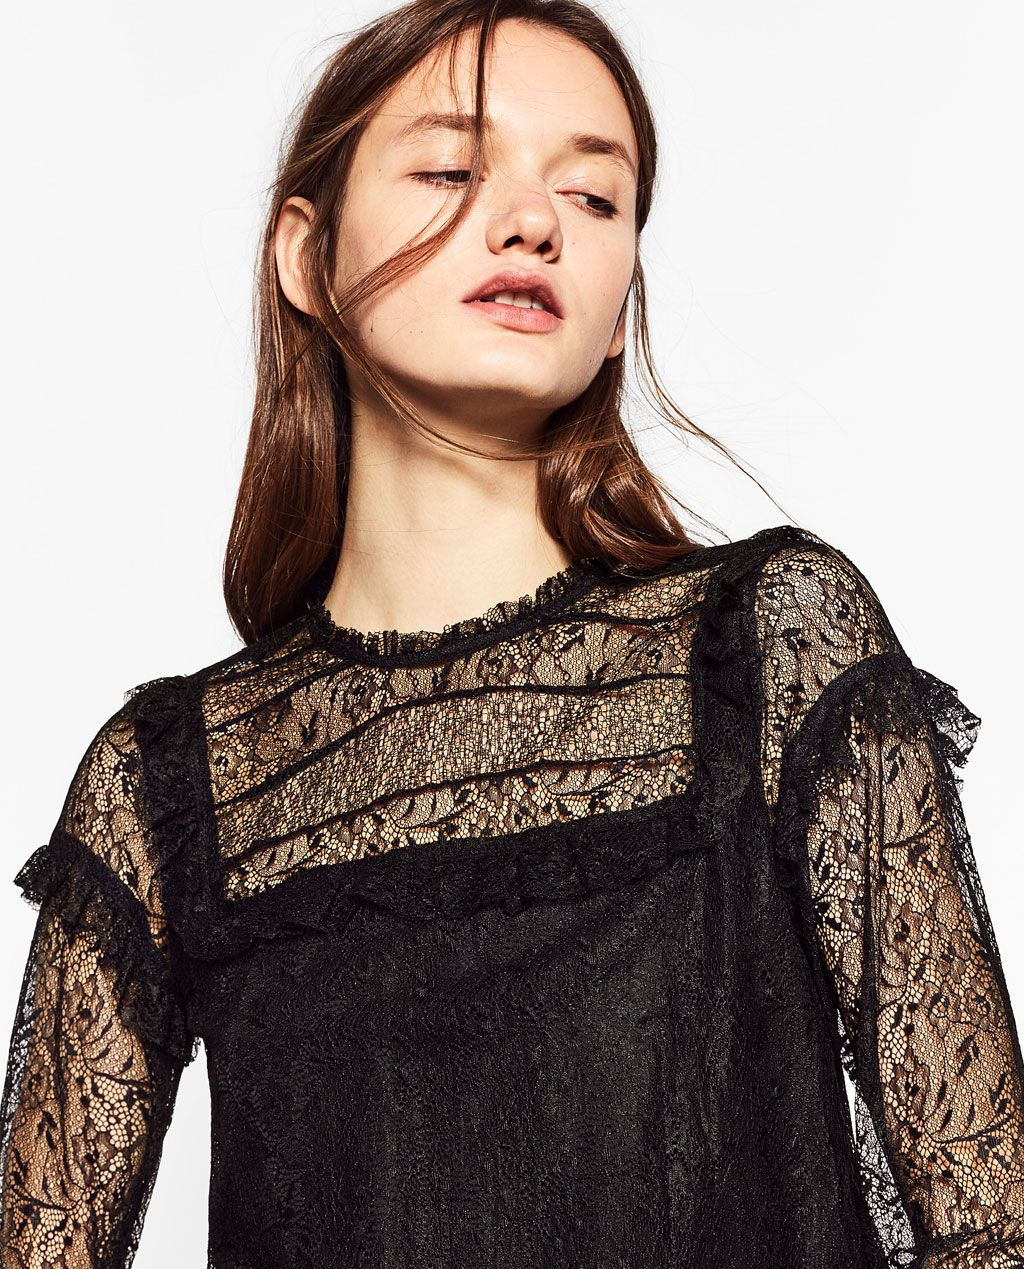 Contrast lace dress zara  CONTRAST LACE TOP  Style in   Pinterest  Lace tops Lace and Tops